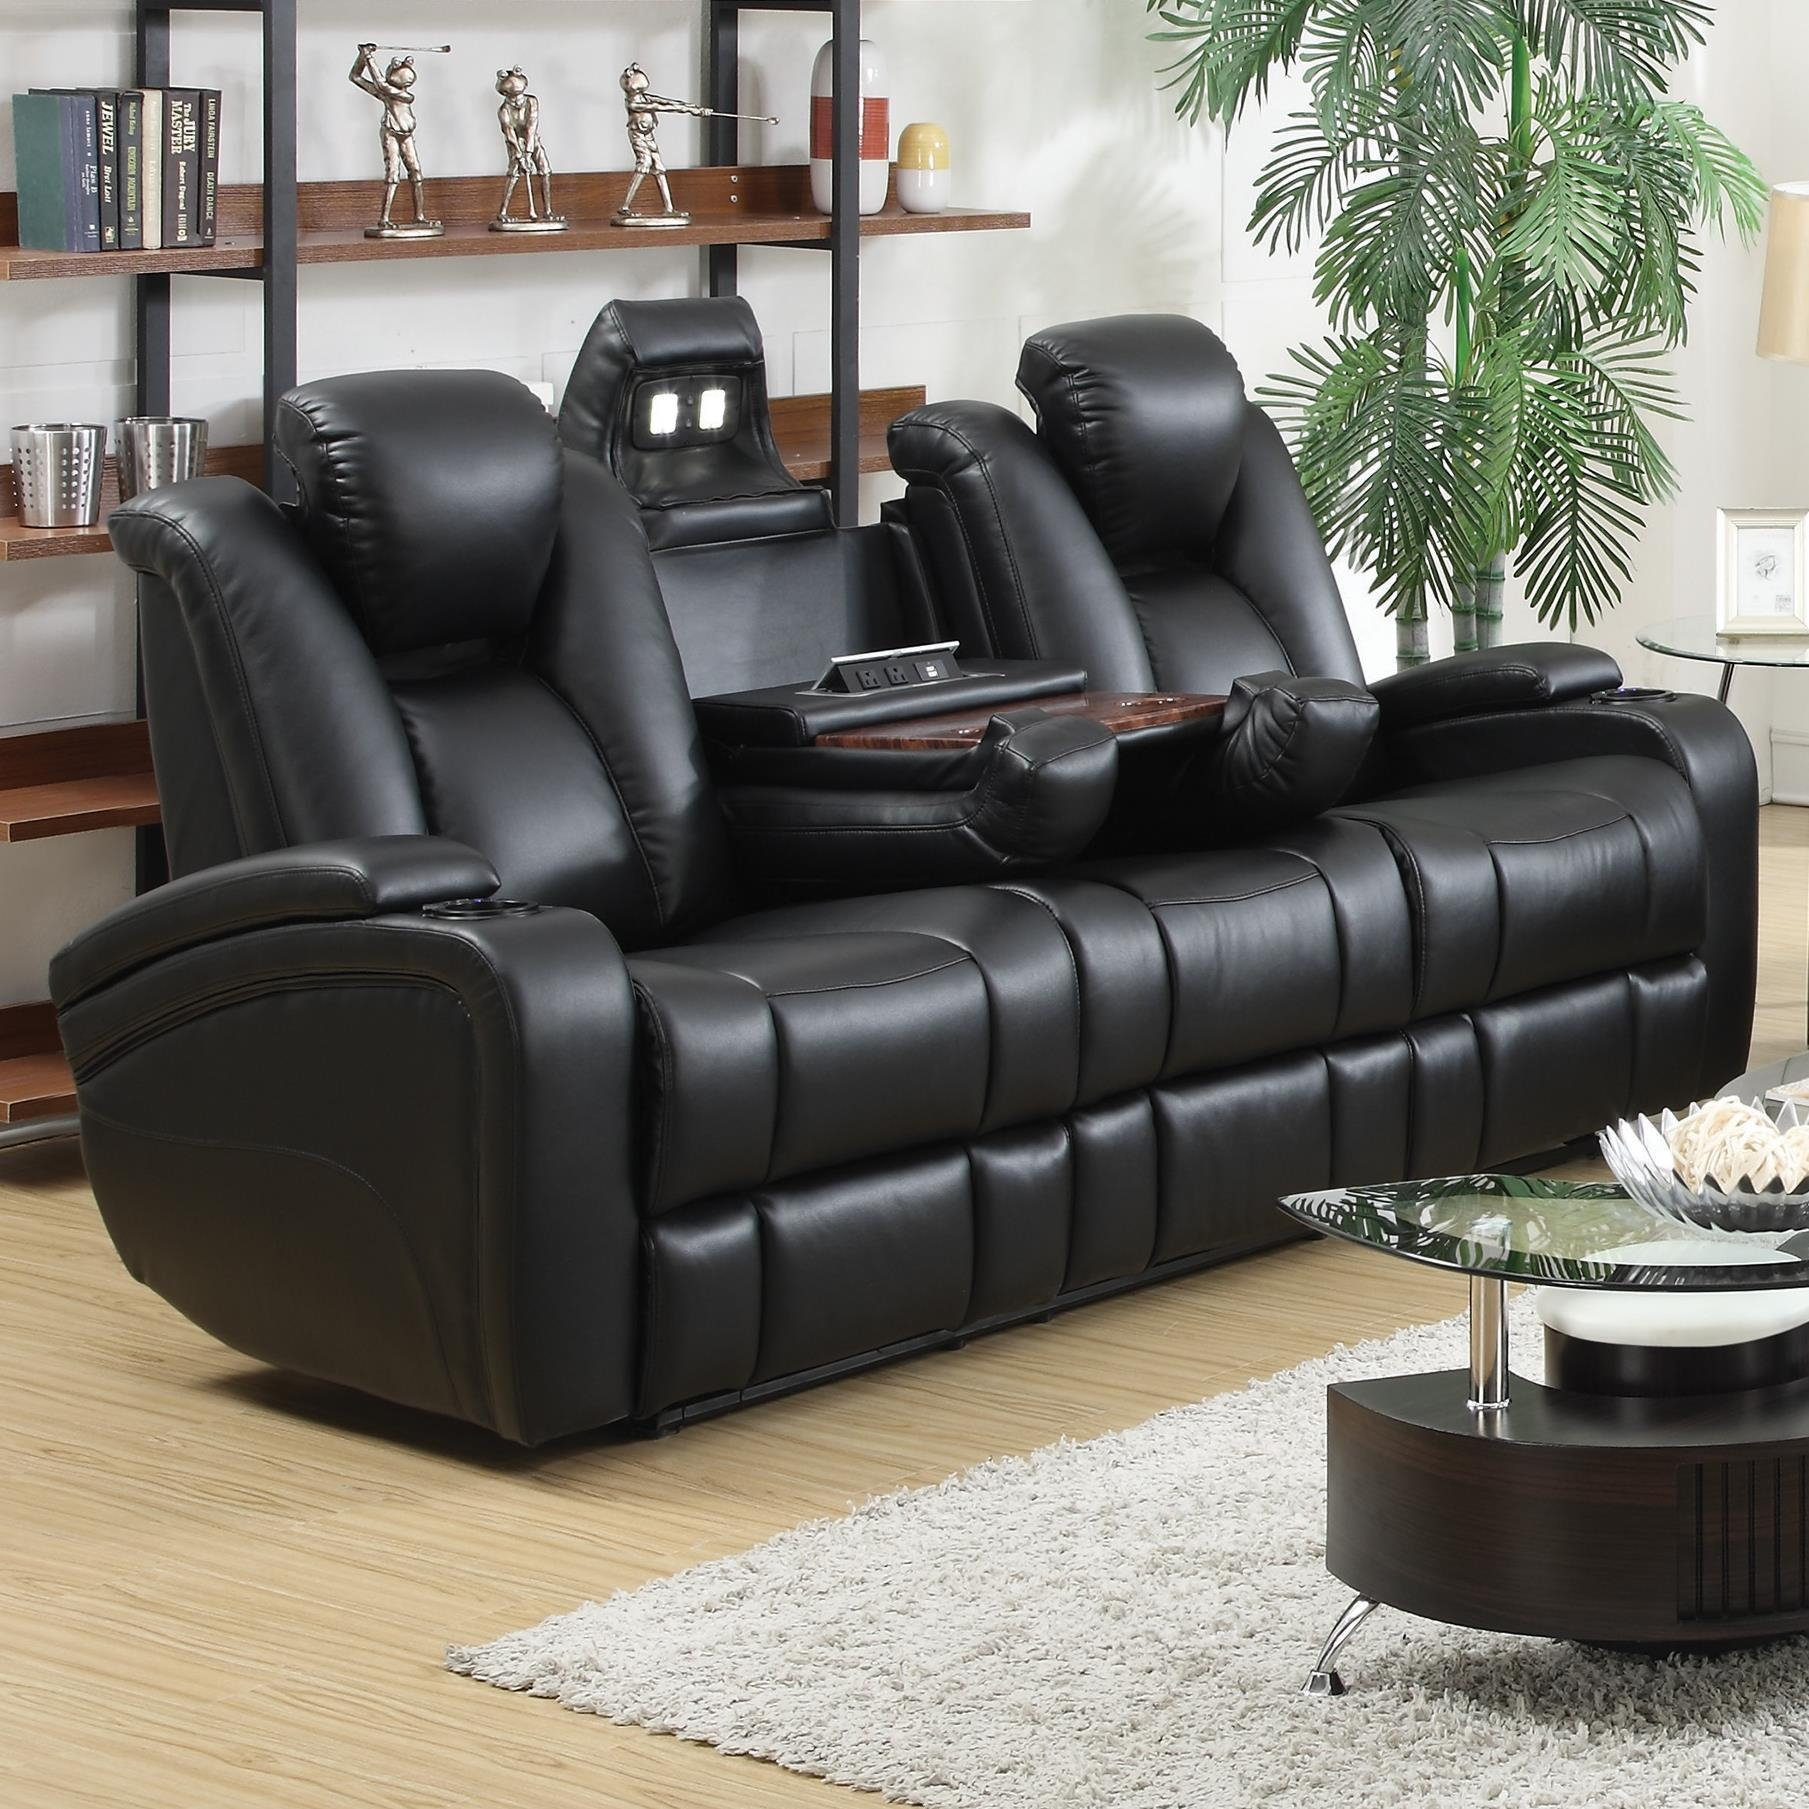 Coaster Delange Reclining Power Sofa With Adjustable Headrests Throughout Sofa Chair Recliner (Image 6 of 20)